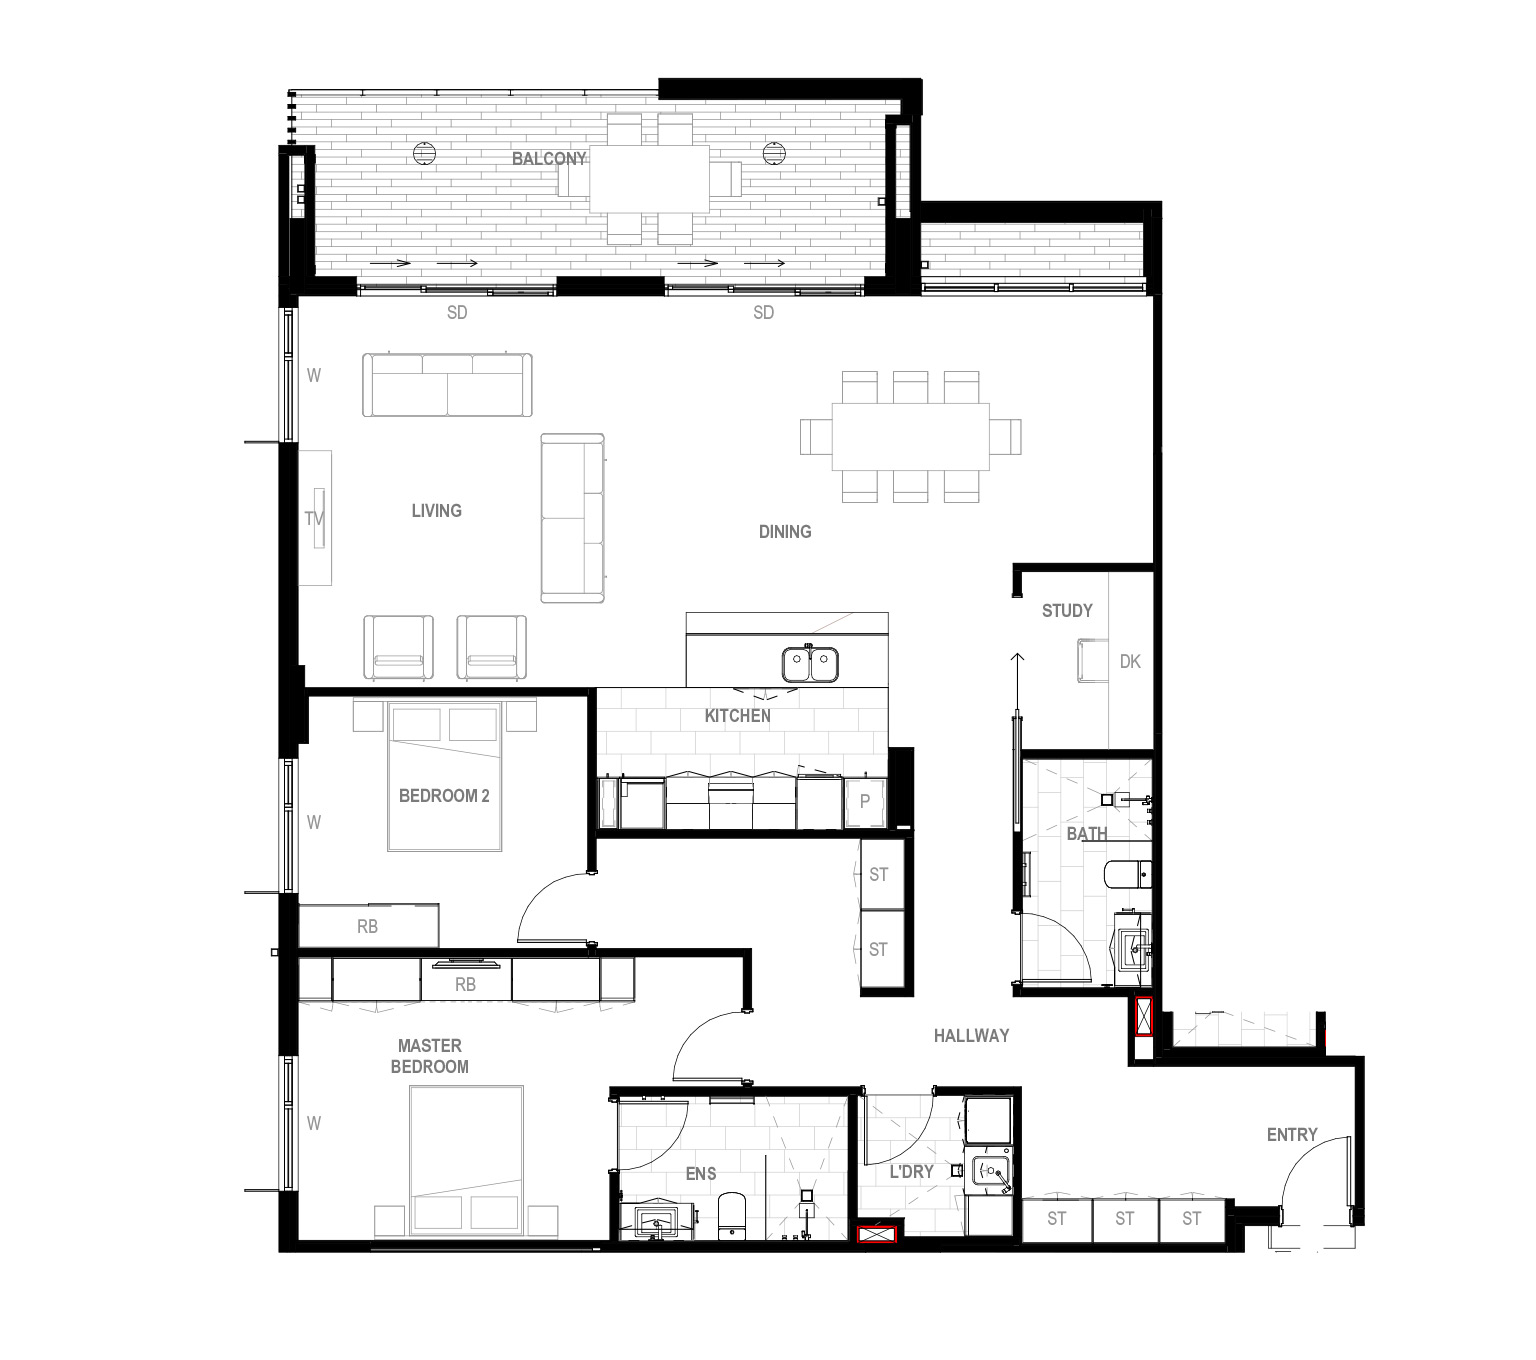 2 bedroom + study Floor Plan